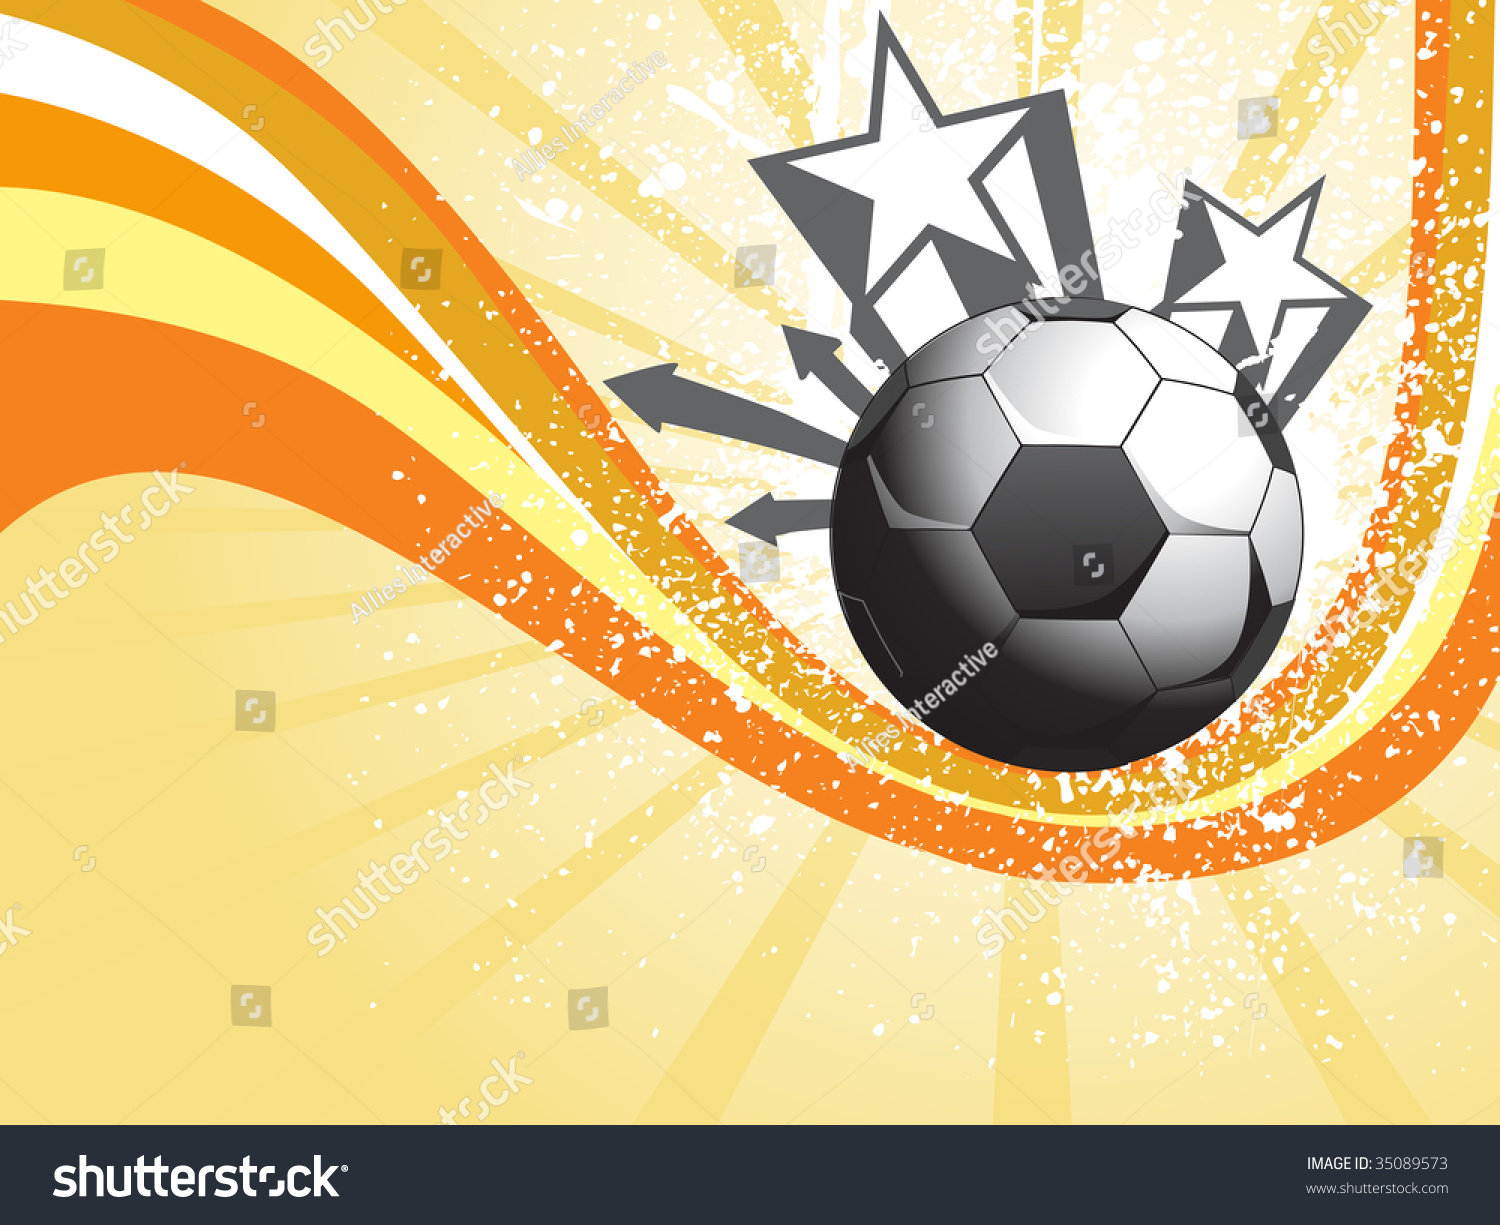 Abstract Grungy Background Volleyball Arrowhead Stock: Abstract Yellow Rays Background With Grungy Soccer And